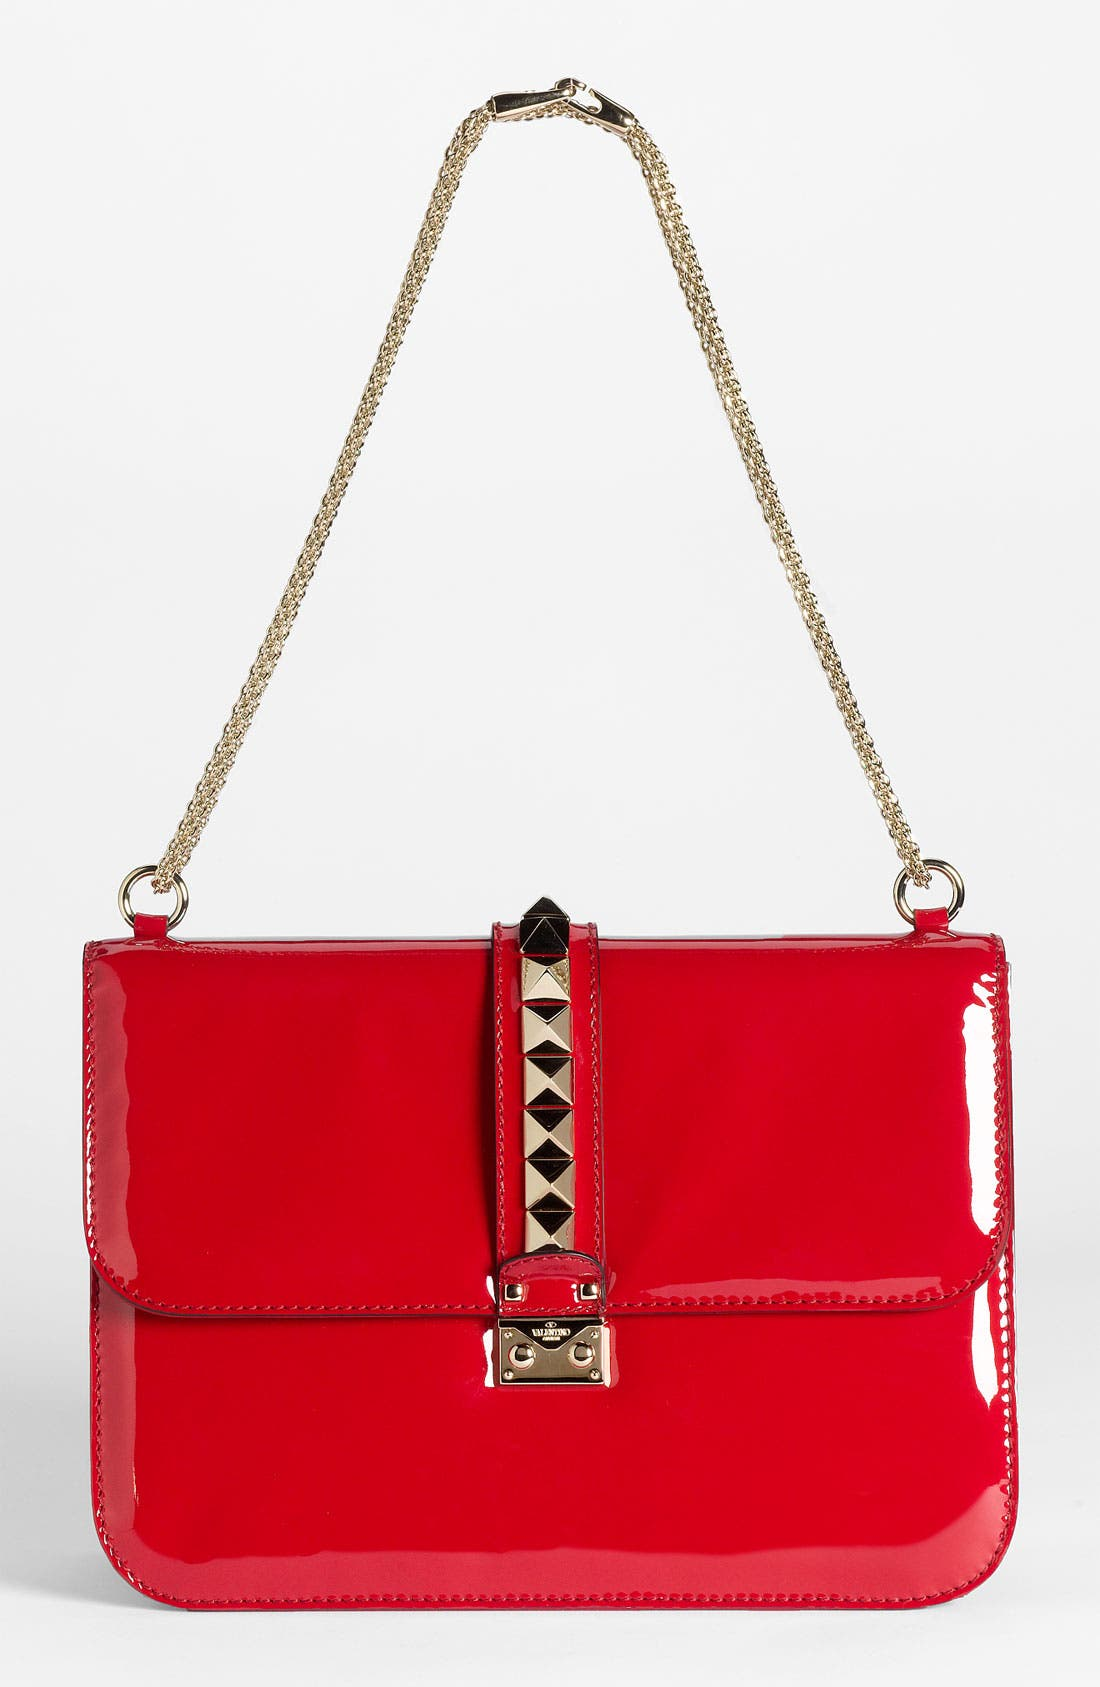 Alternate Image 1 Selected - Valentino 'Grande Lock' Patent Leather Shoulder Bag